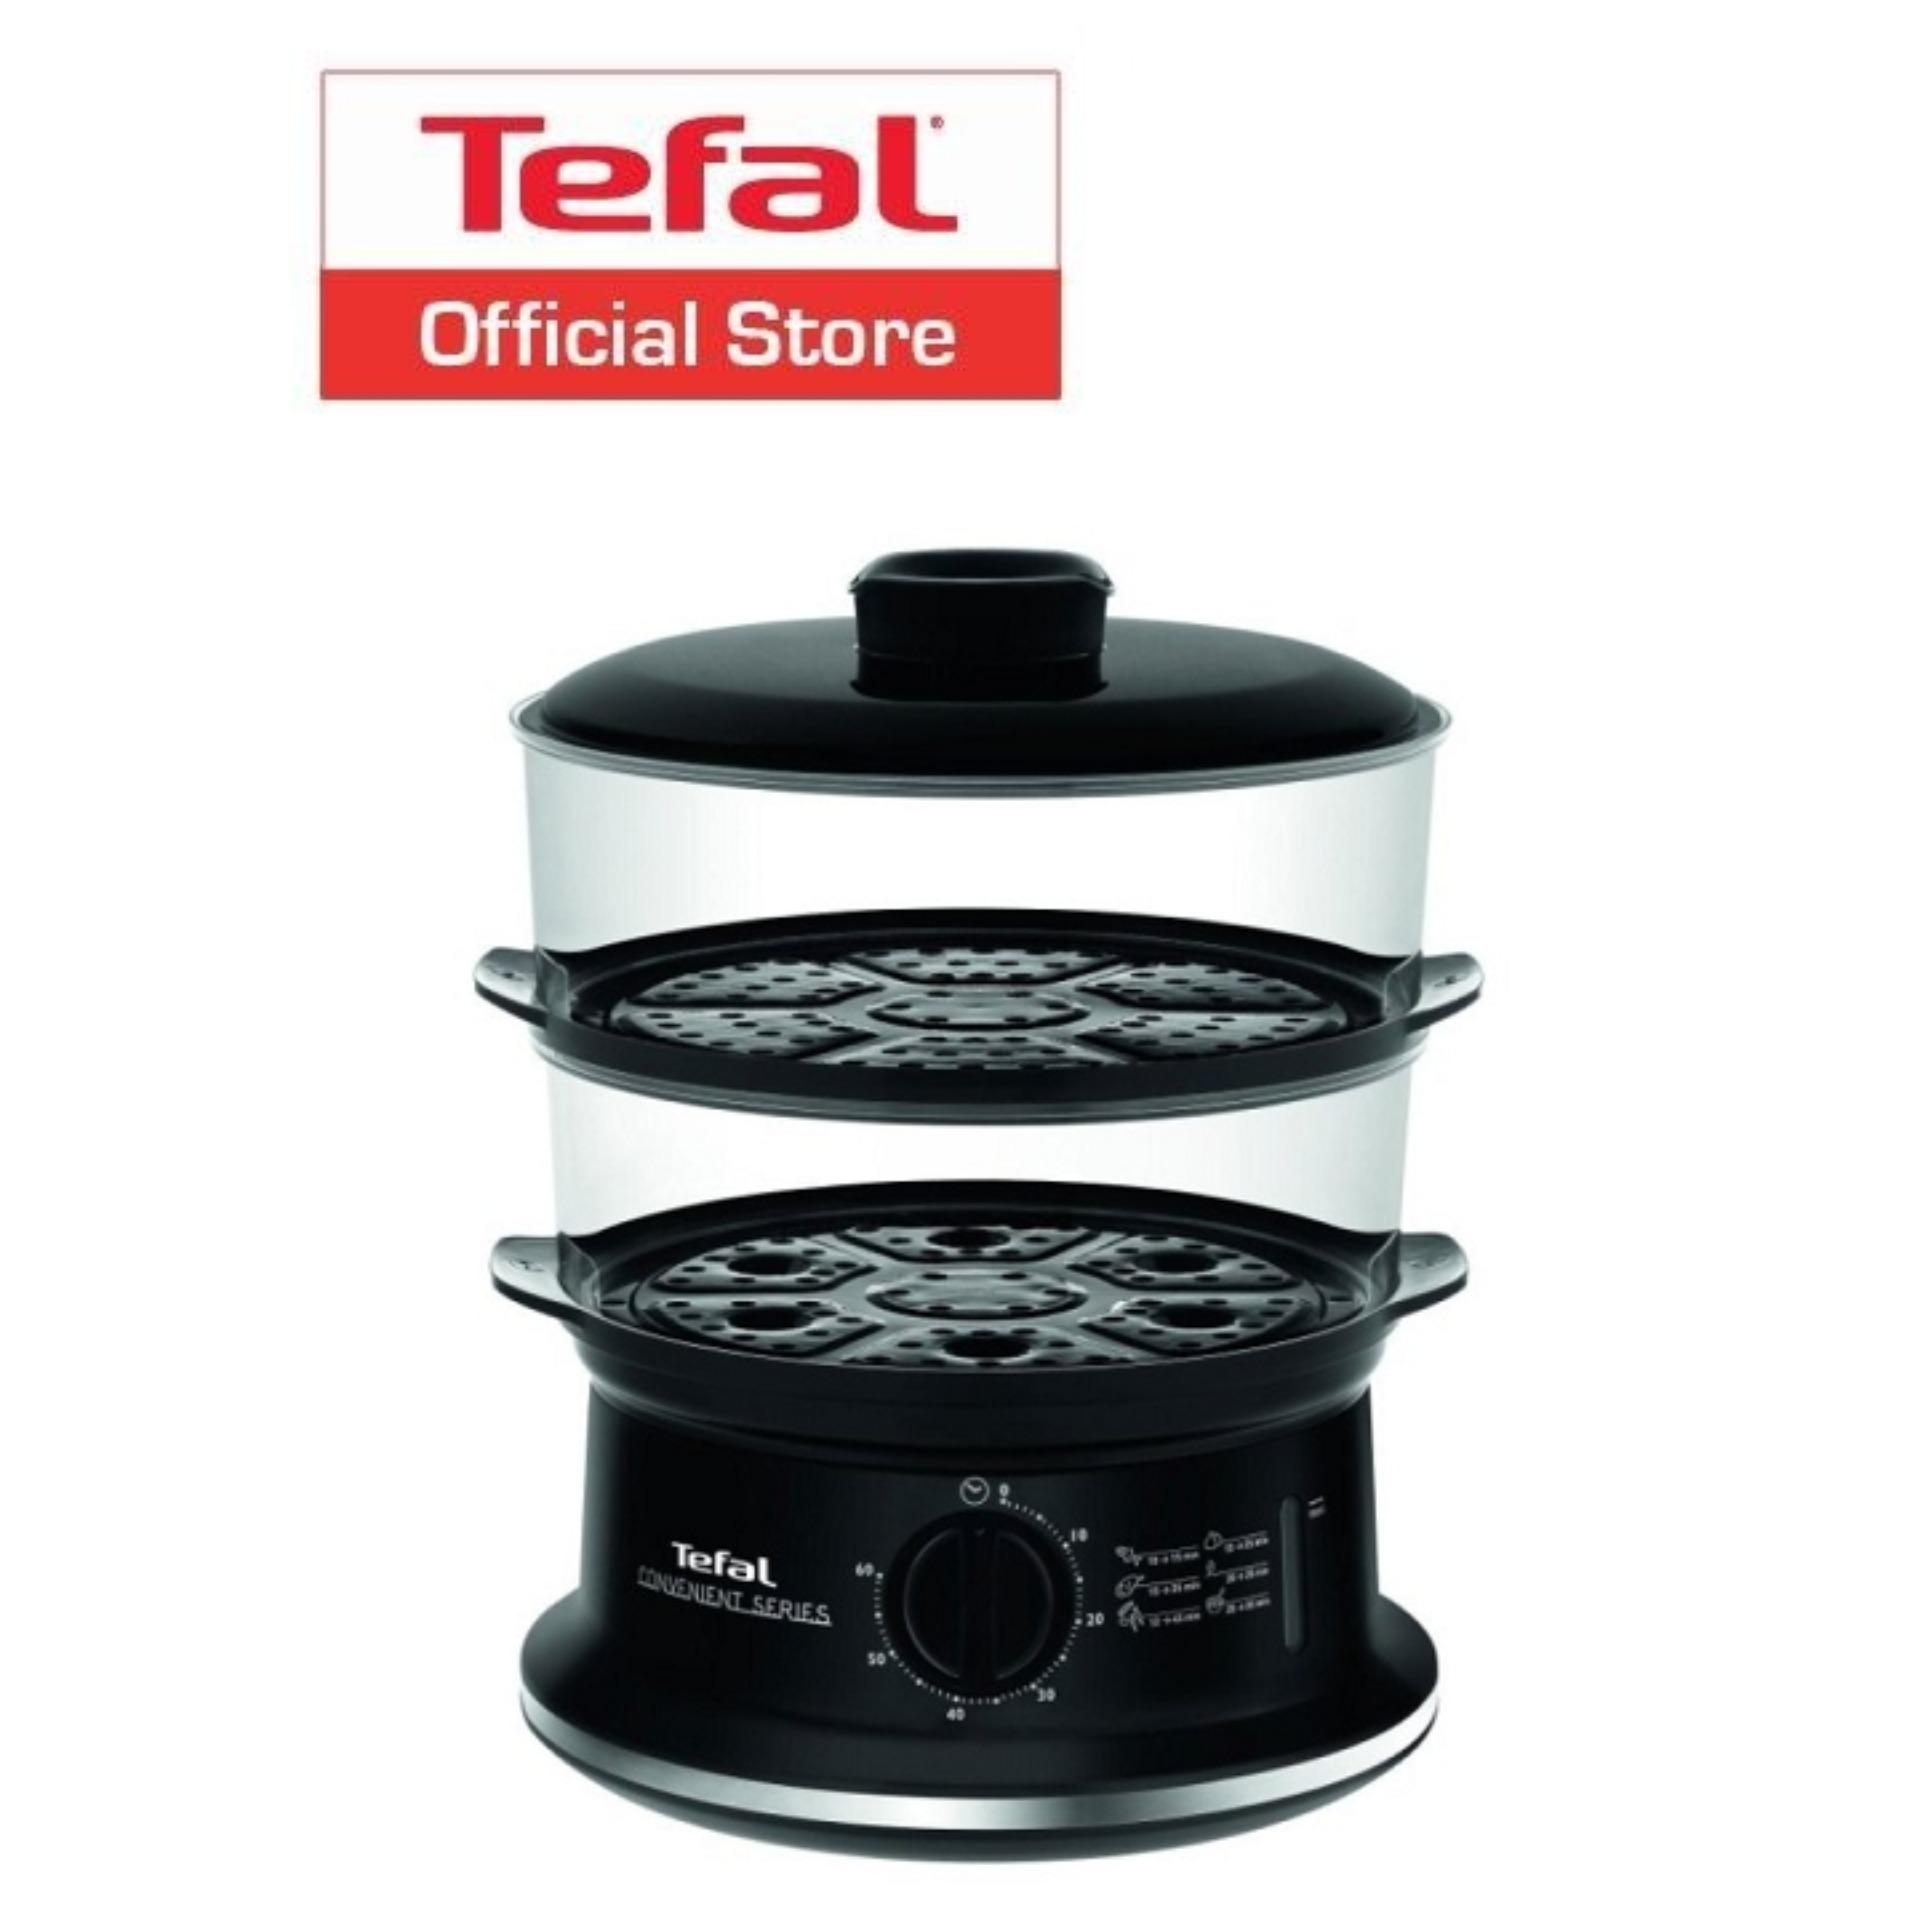 Tefal Convenient Series Steamer Vc1401 By Tefal Official Store.